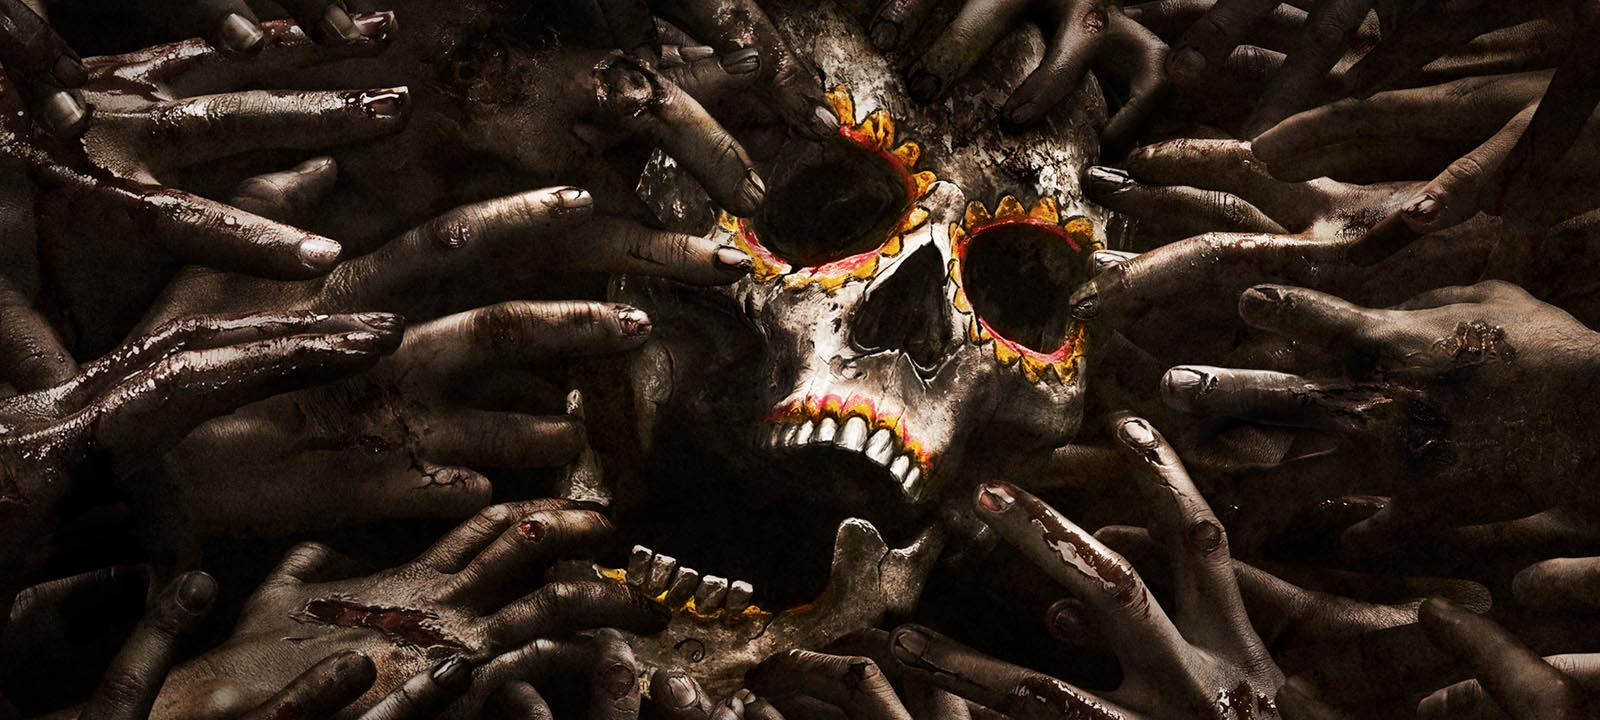 fear-the-walking-dead-season-2b-key-art-800×600-nologo